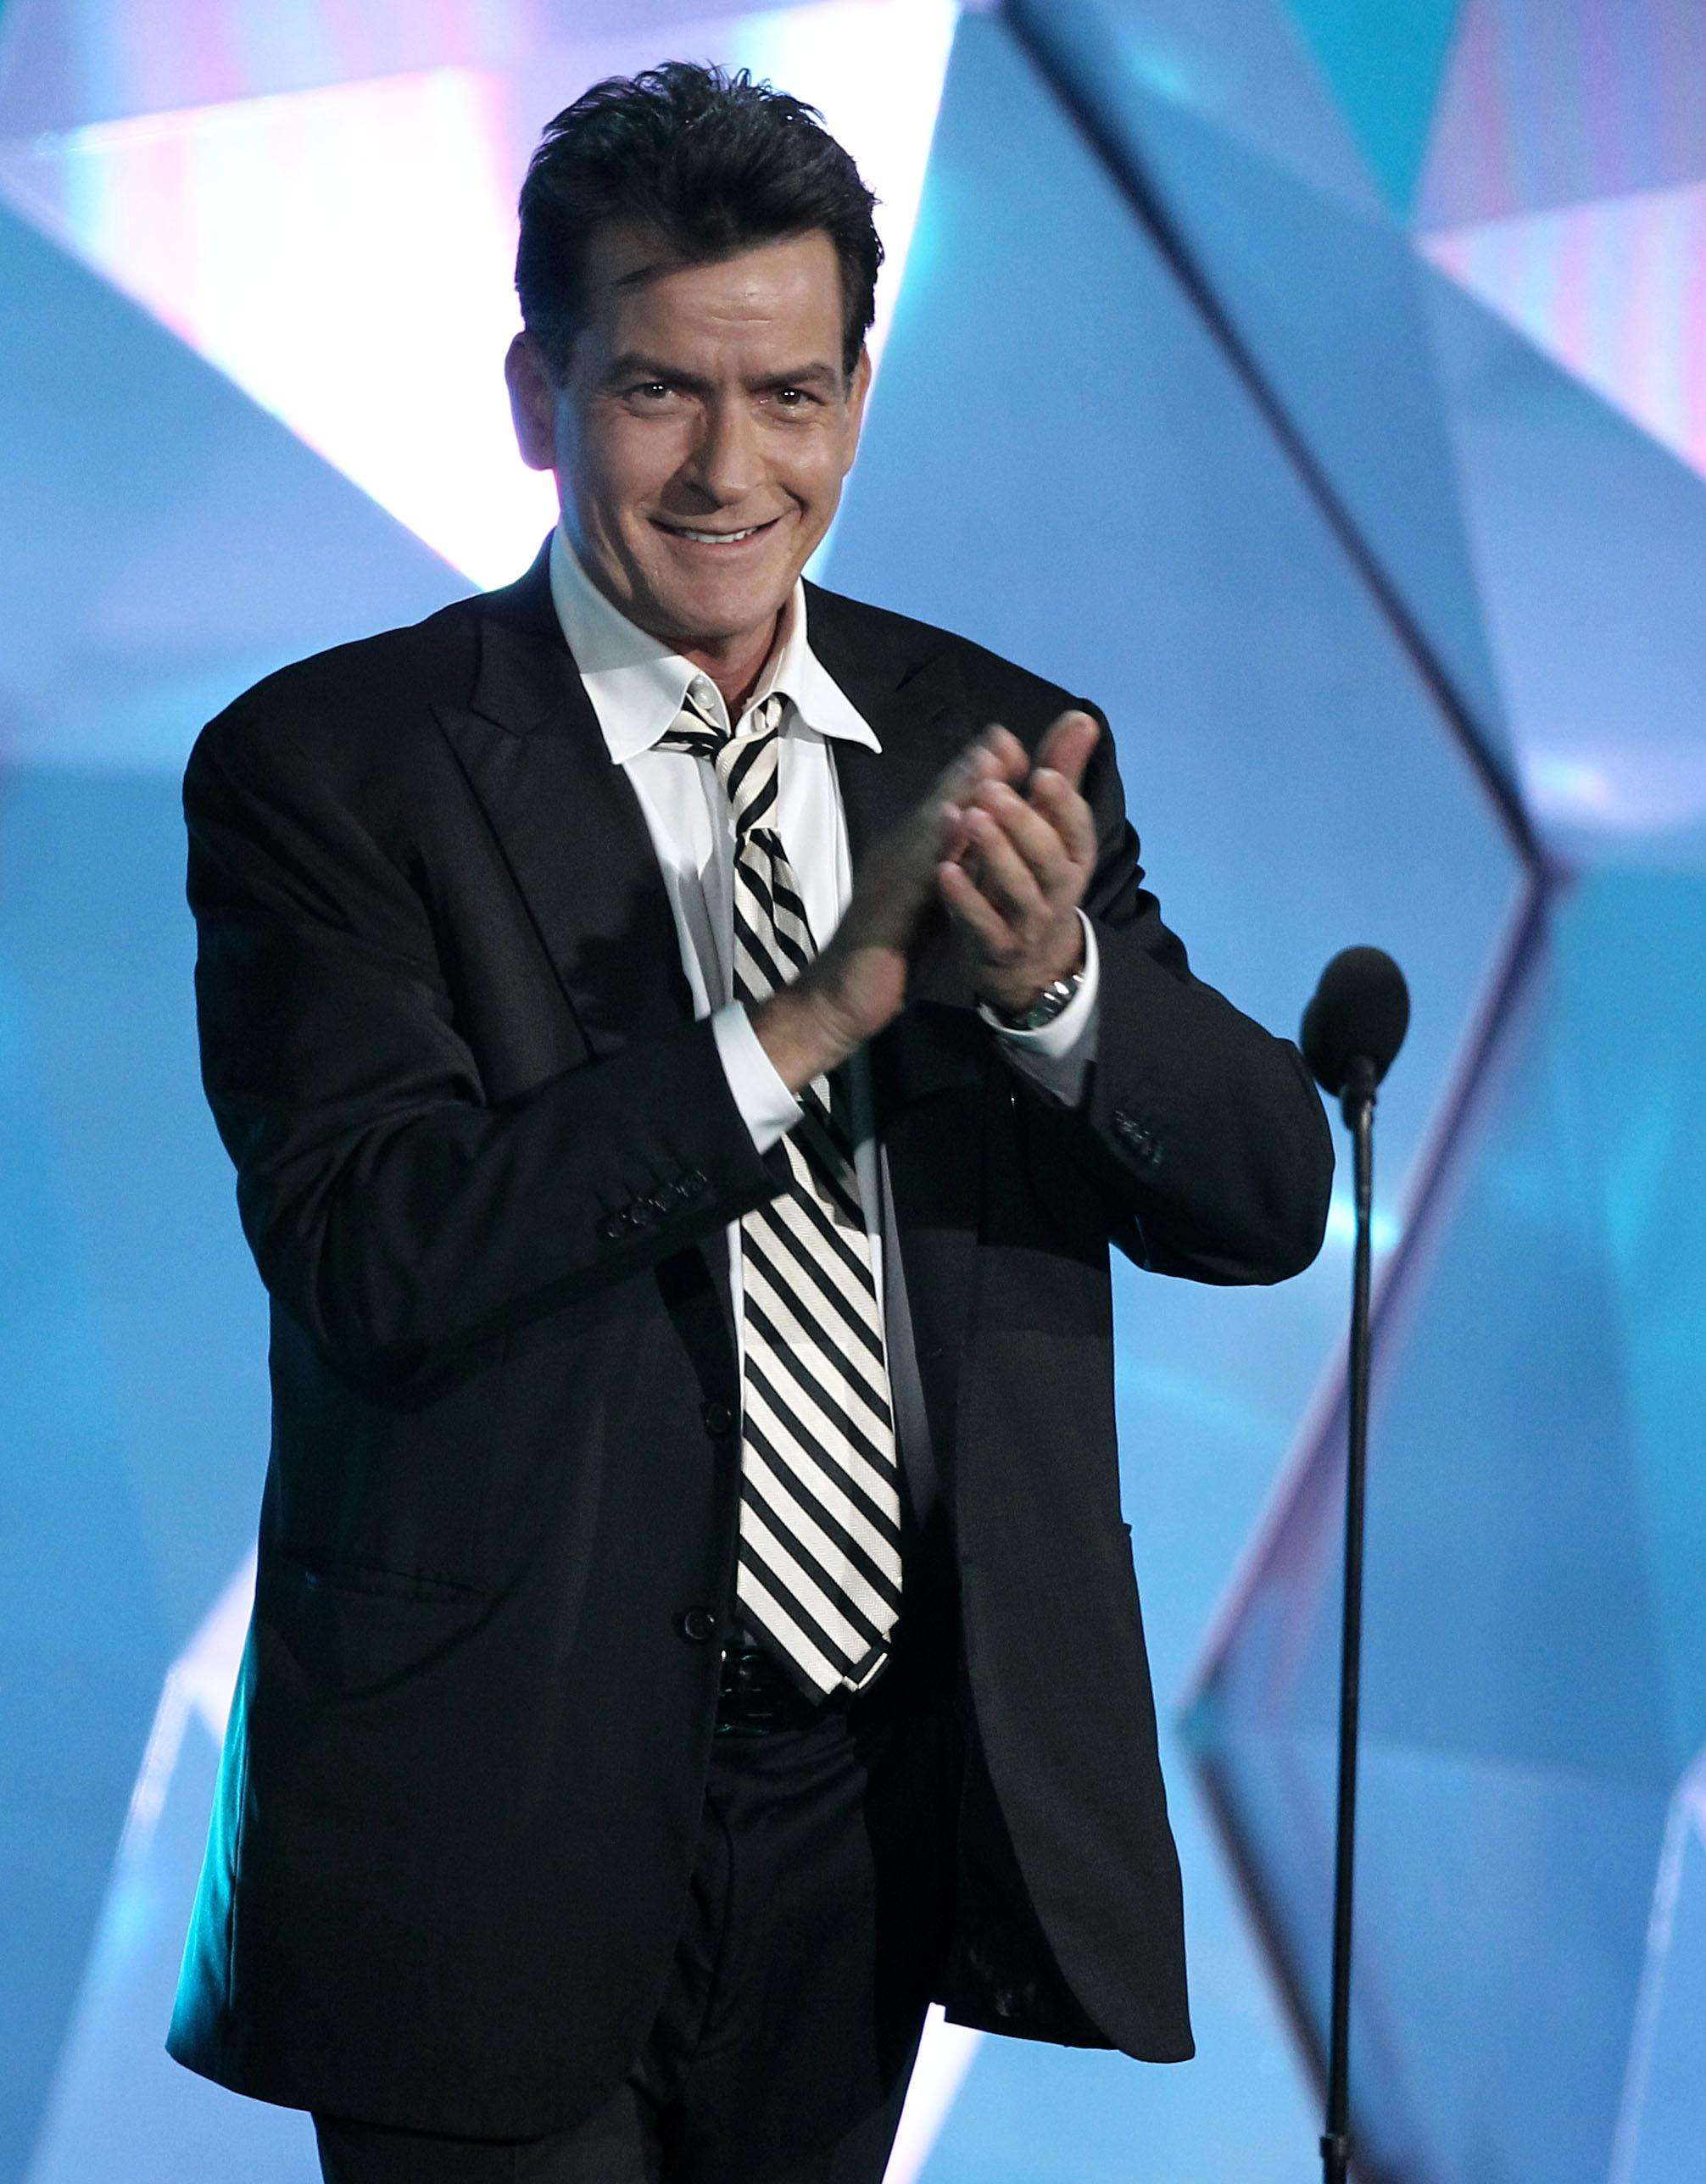 Charlie Sheen is seen onstage at the MTV Movie Awards on Sunday, June 3, 2012 in Los Angeles. (Photo by Matt Sayles/Invision/AP) Foto: Matt Sayles/MATT SAYLES/INVISION/AP